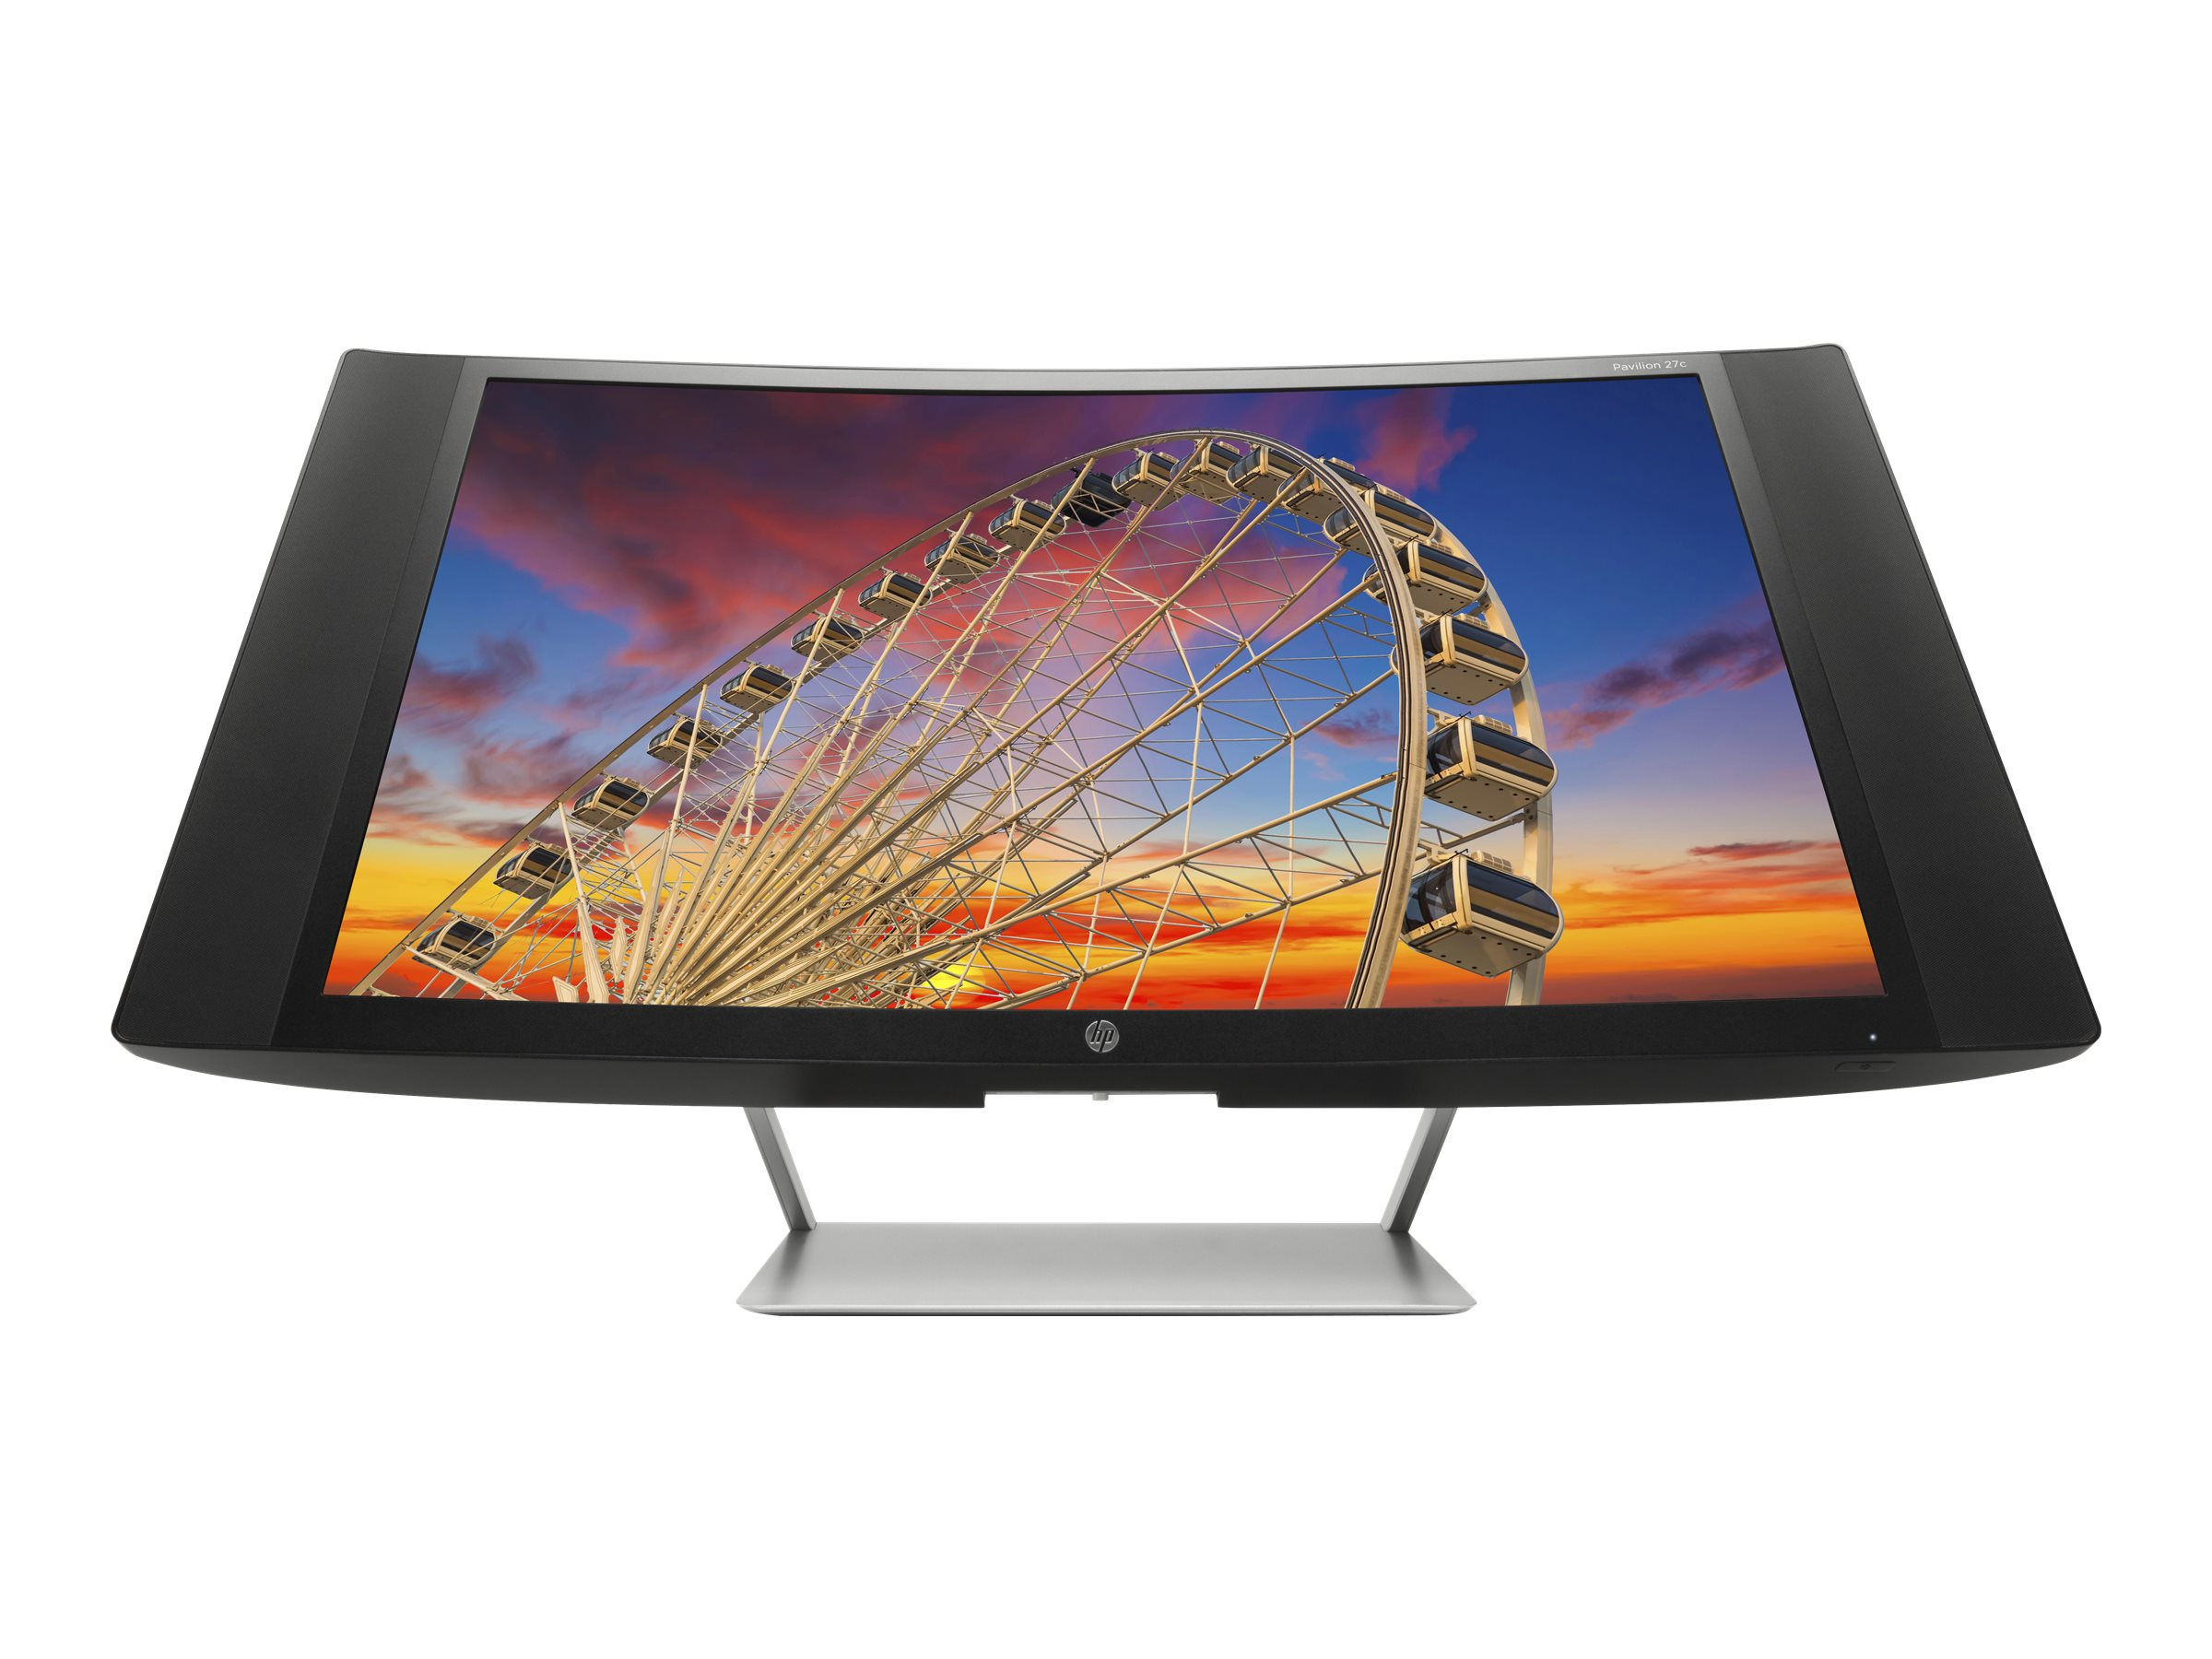 HP 27 Pavilion 27c Full HD LED-LCD Curved Display, Black